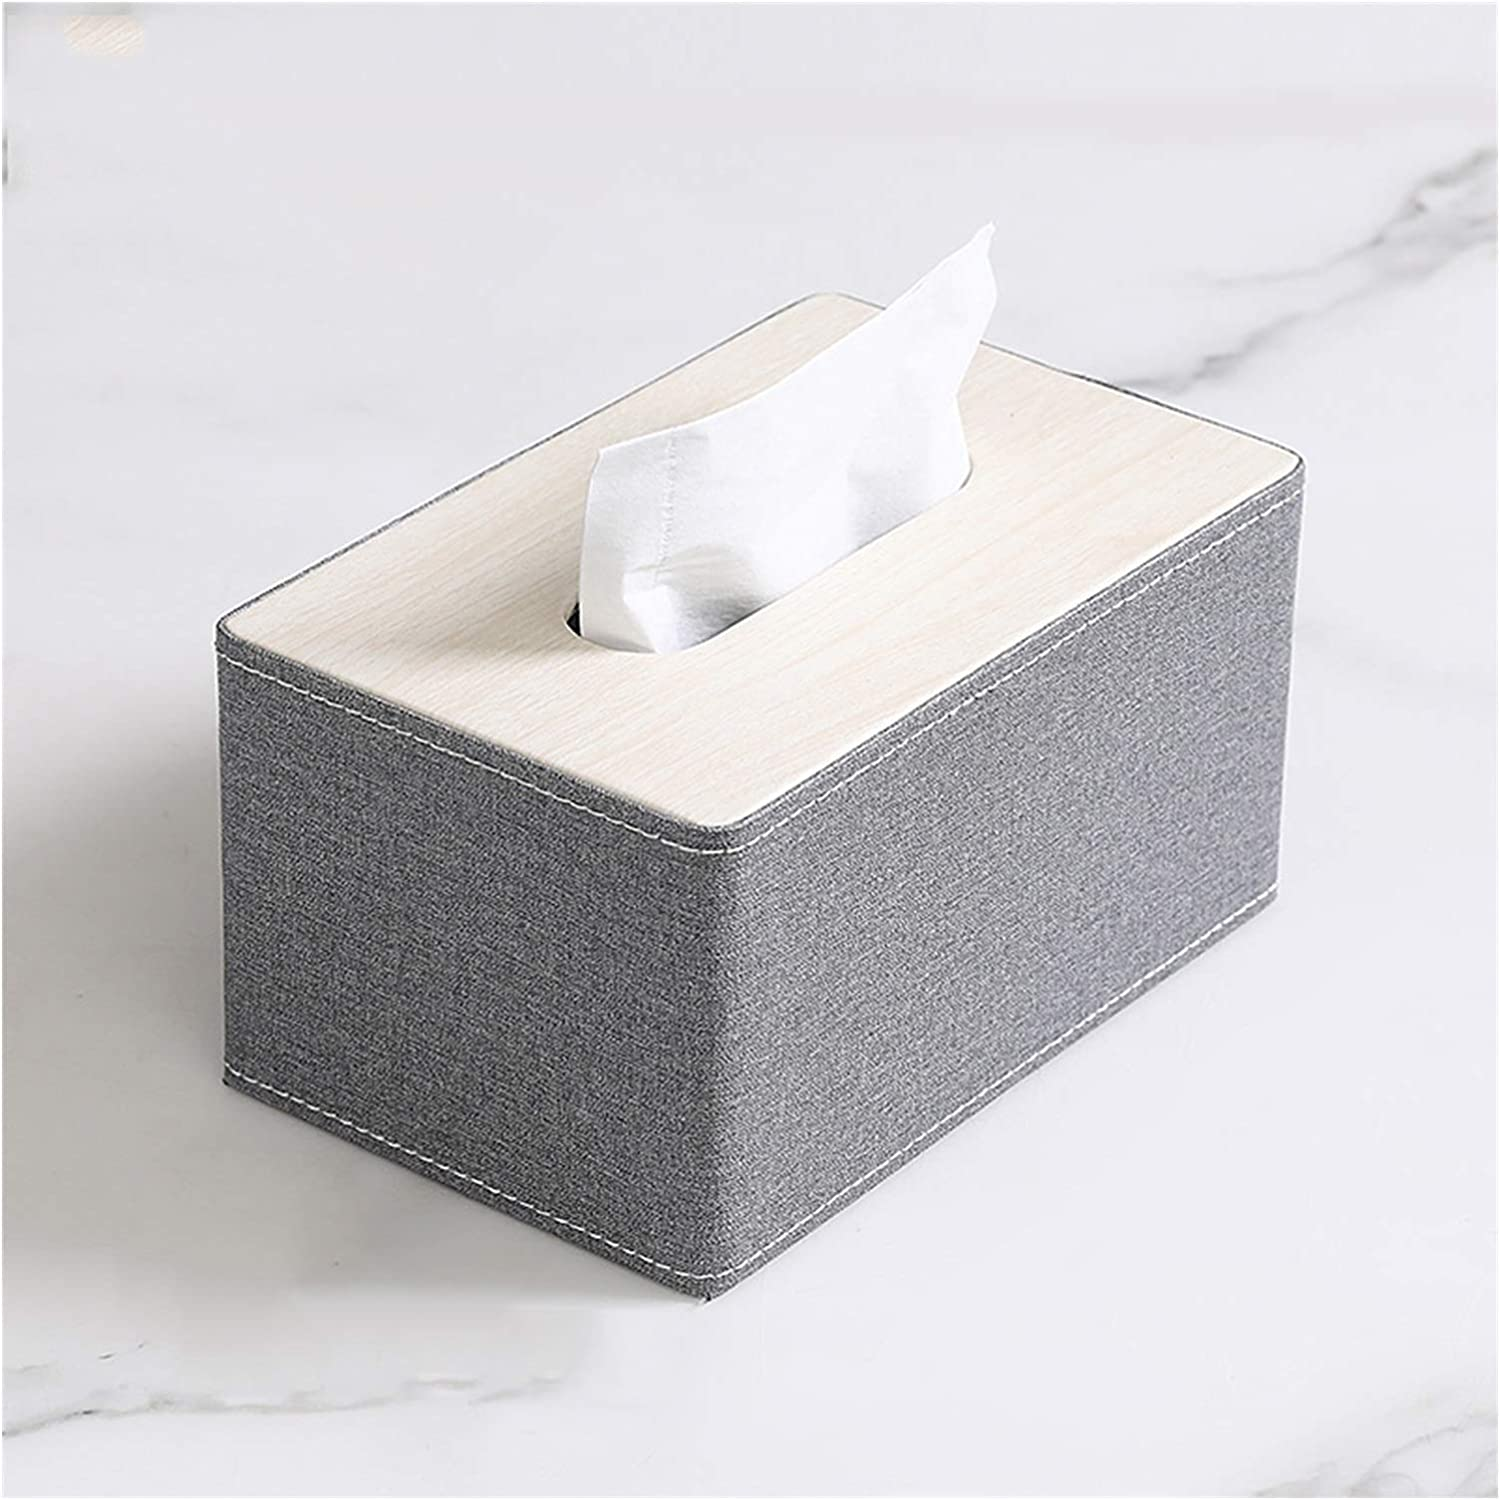 Tissue Max 69% OFF Dispenser Box Holder the Max 62% OFF Friends' Choice Best for